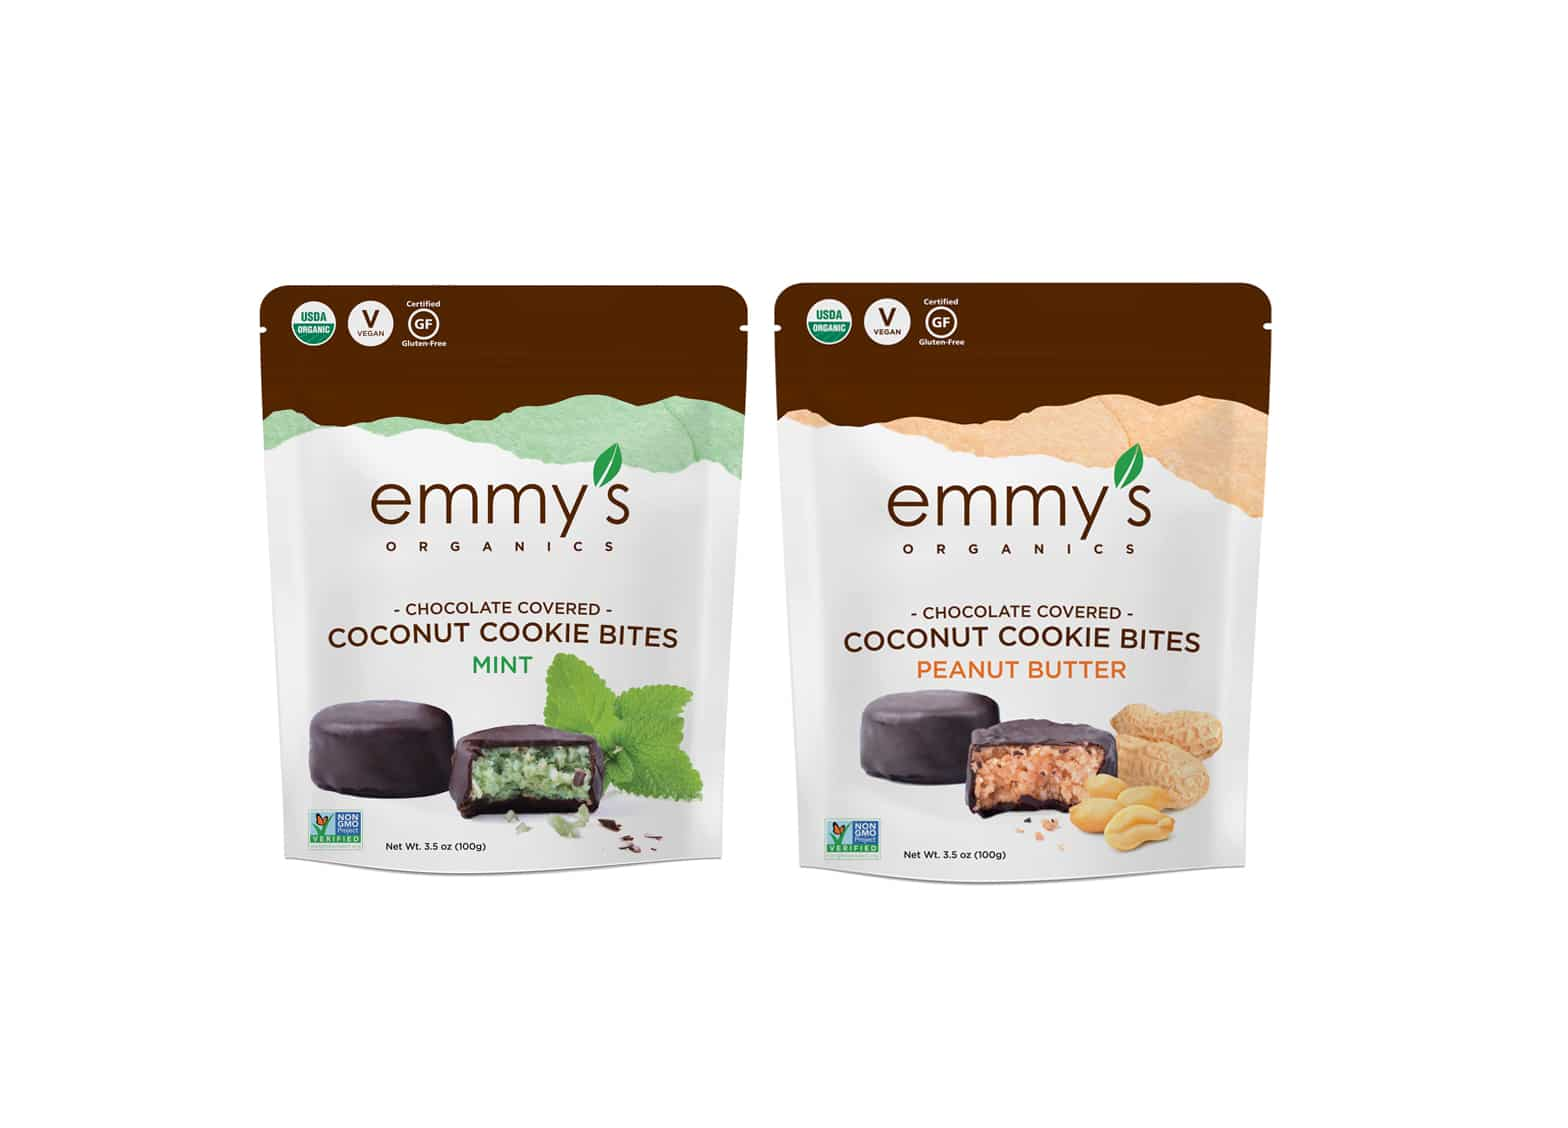 Emmy's Organics to Launch Chocolate Covered Cookie Bites at Expo West